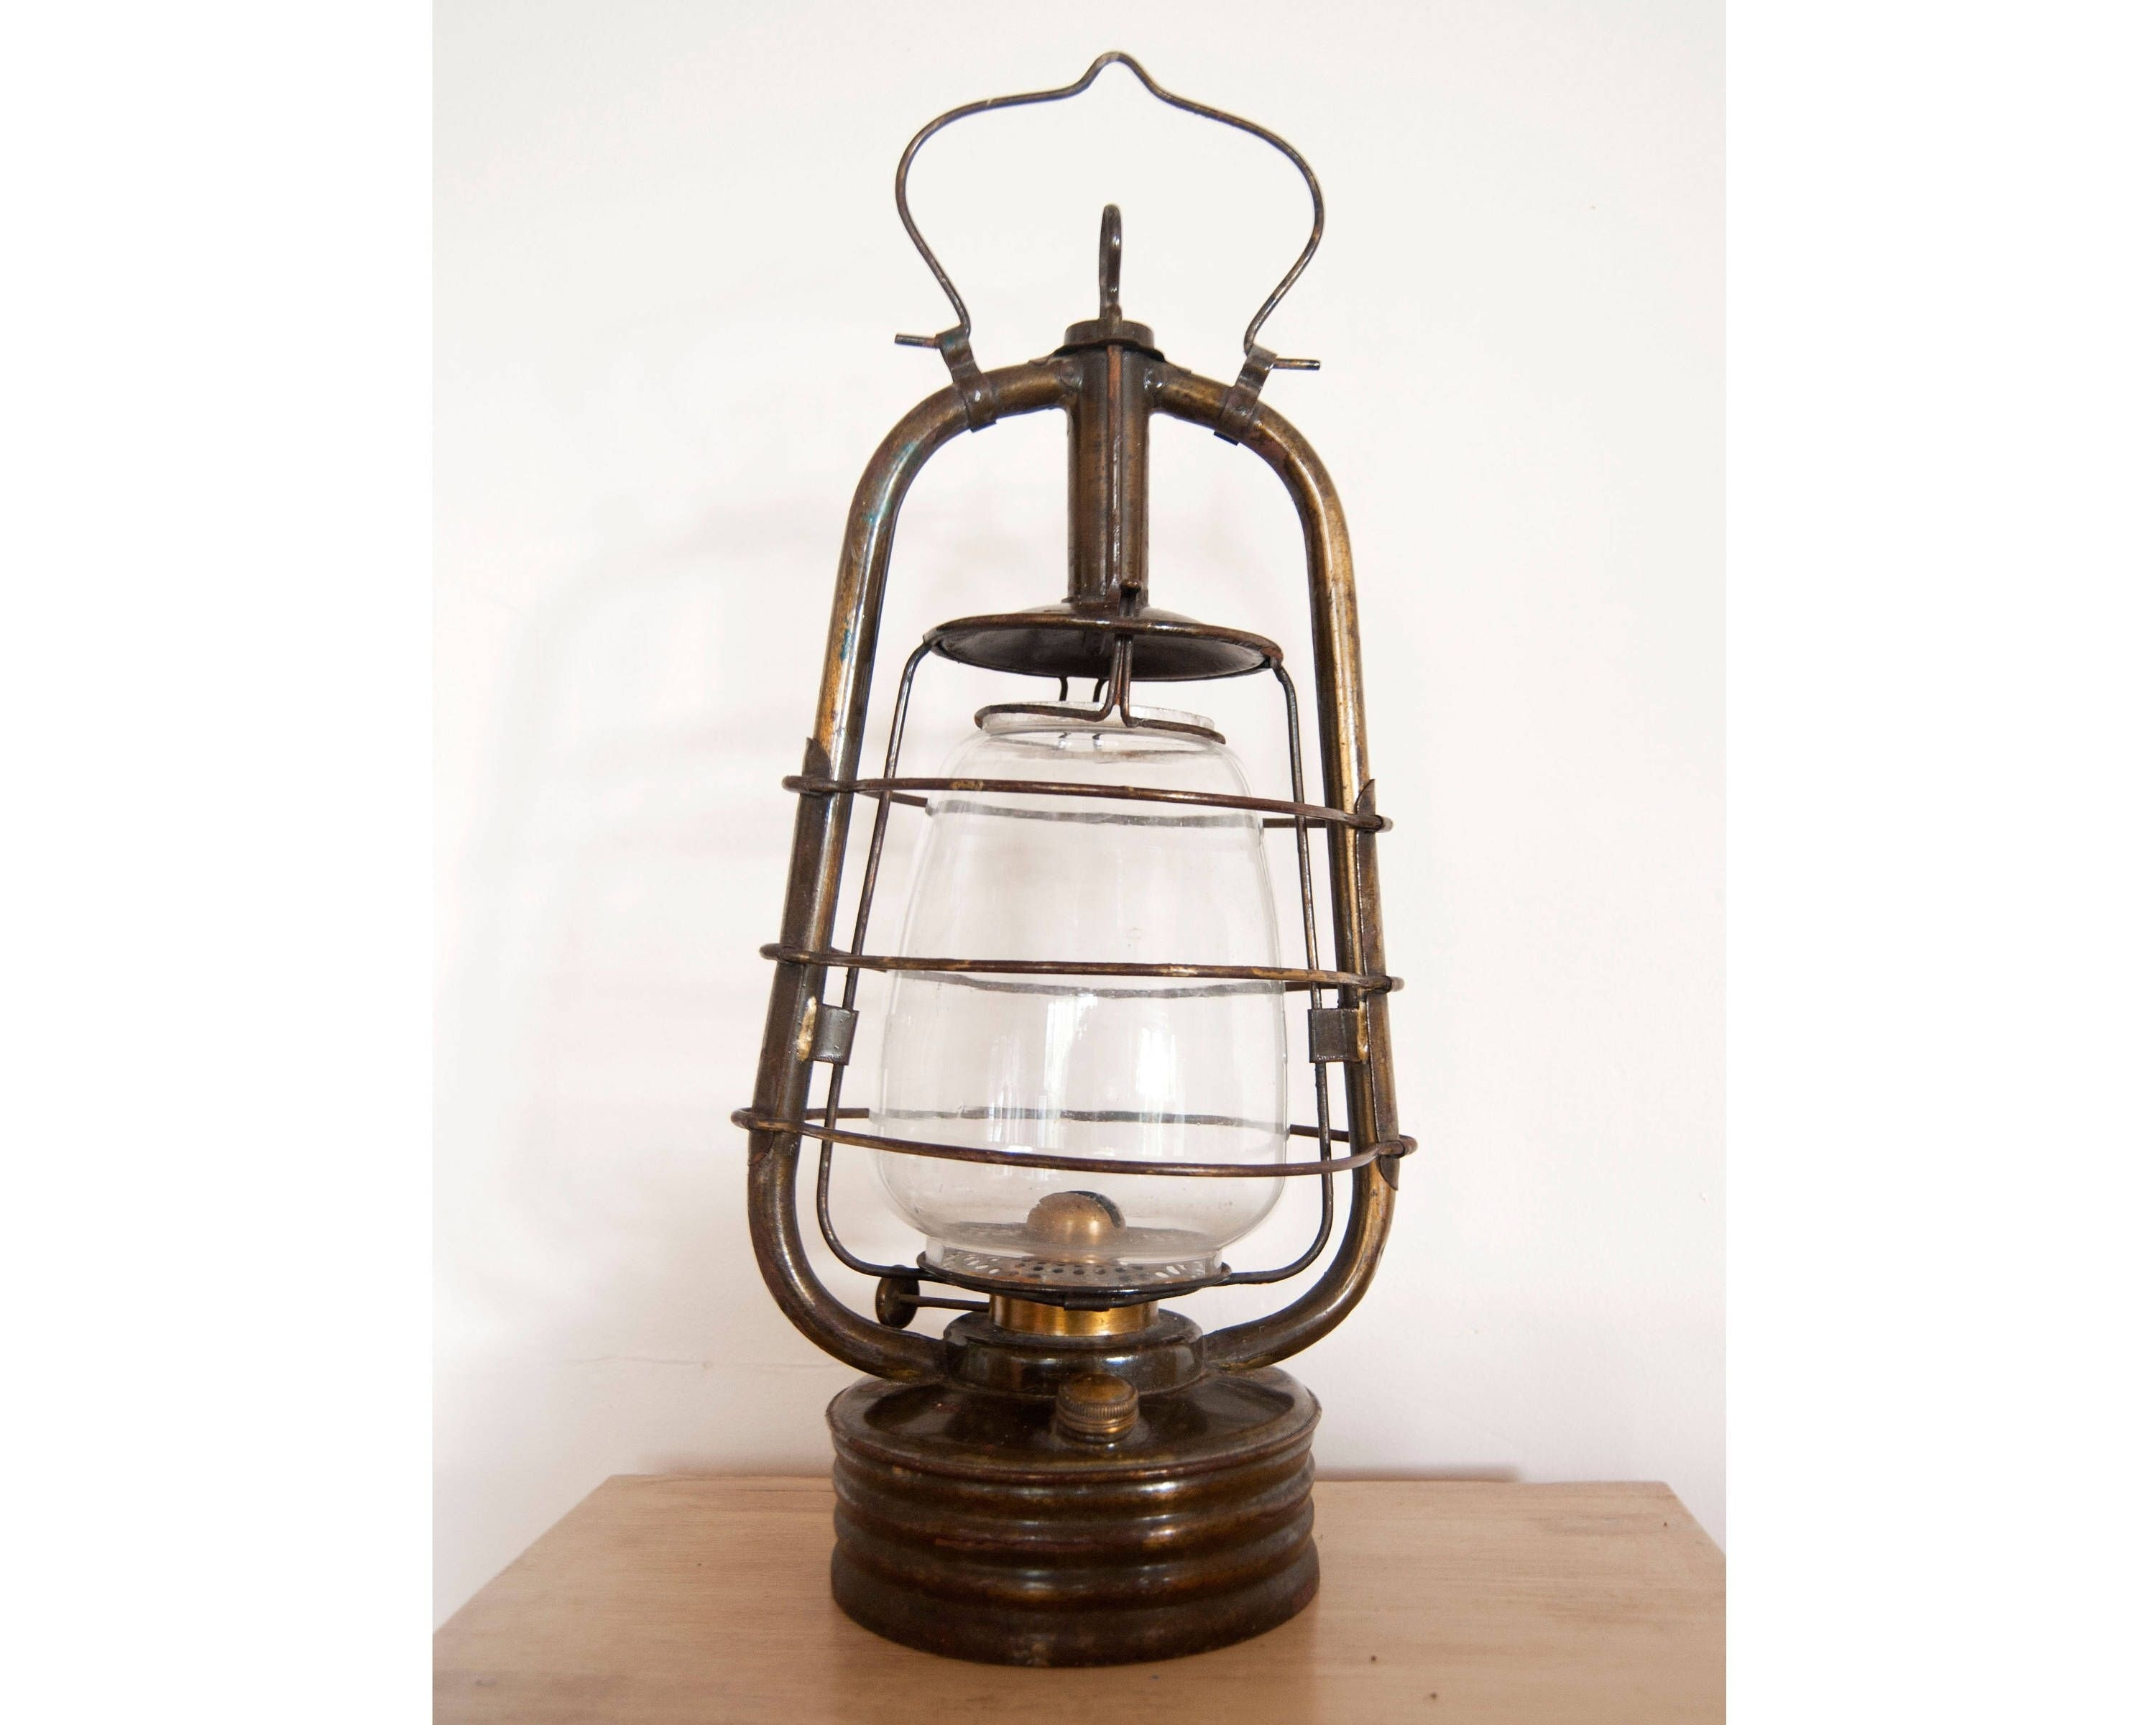 Vintage Lantern Oil Lamp - Antique French Hurricane Brass Lamp with Decorative Outdoor Kerosene Lanterns (Image 18 of 20)